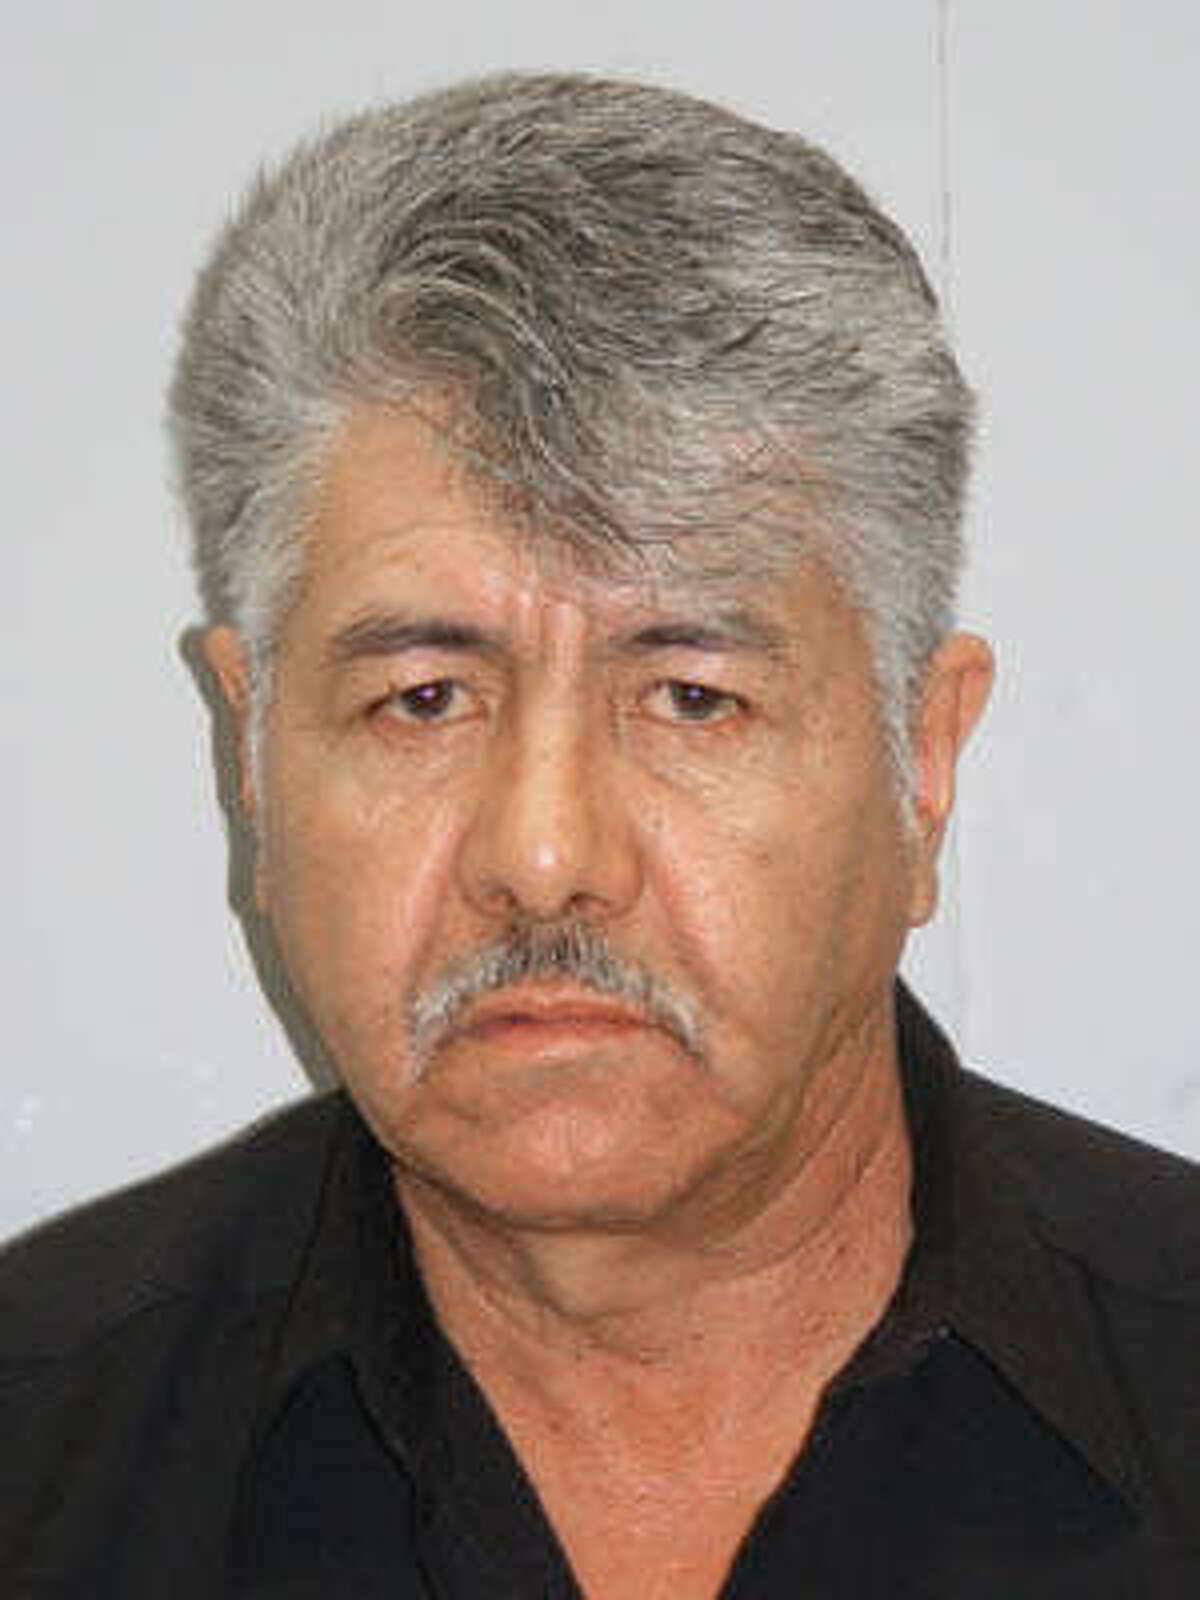 Placido Garay, 68, is the father of Anthony Garay, who was recently arrested on a charge of sexual assault after his minor relative was caught searching for pornography at school and told her teacher she was trying to learn about what Anthony allegedly does to her at night.